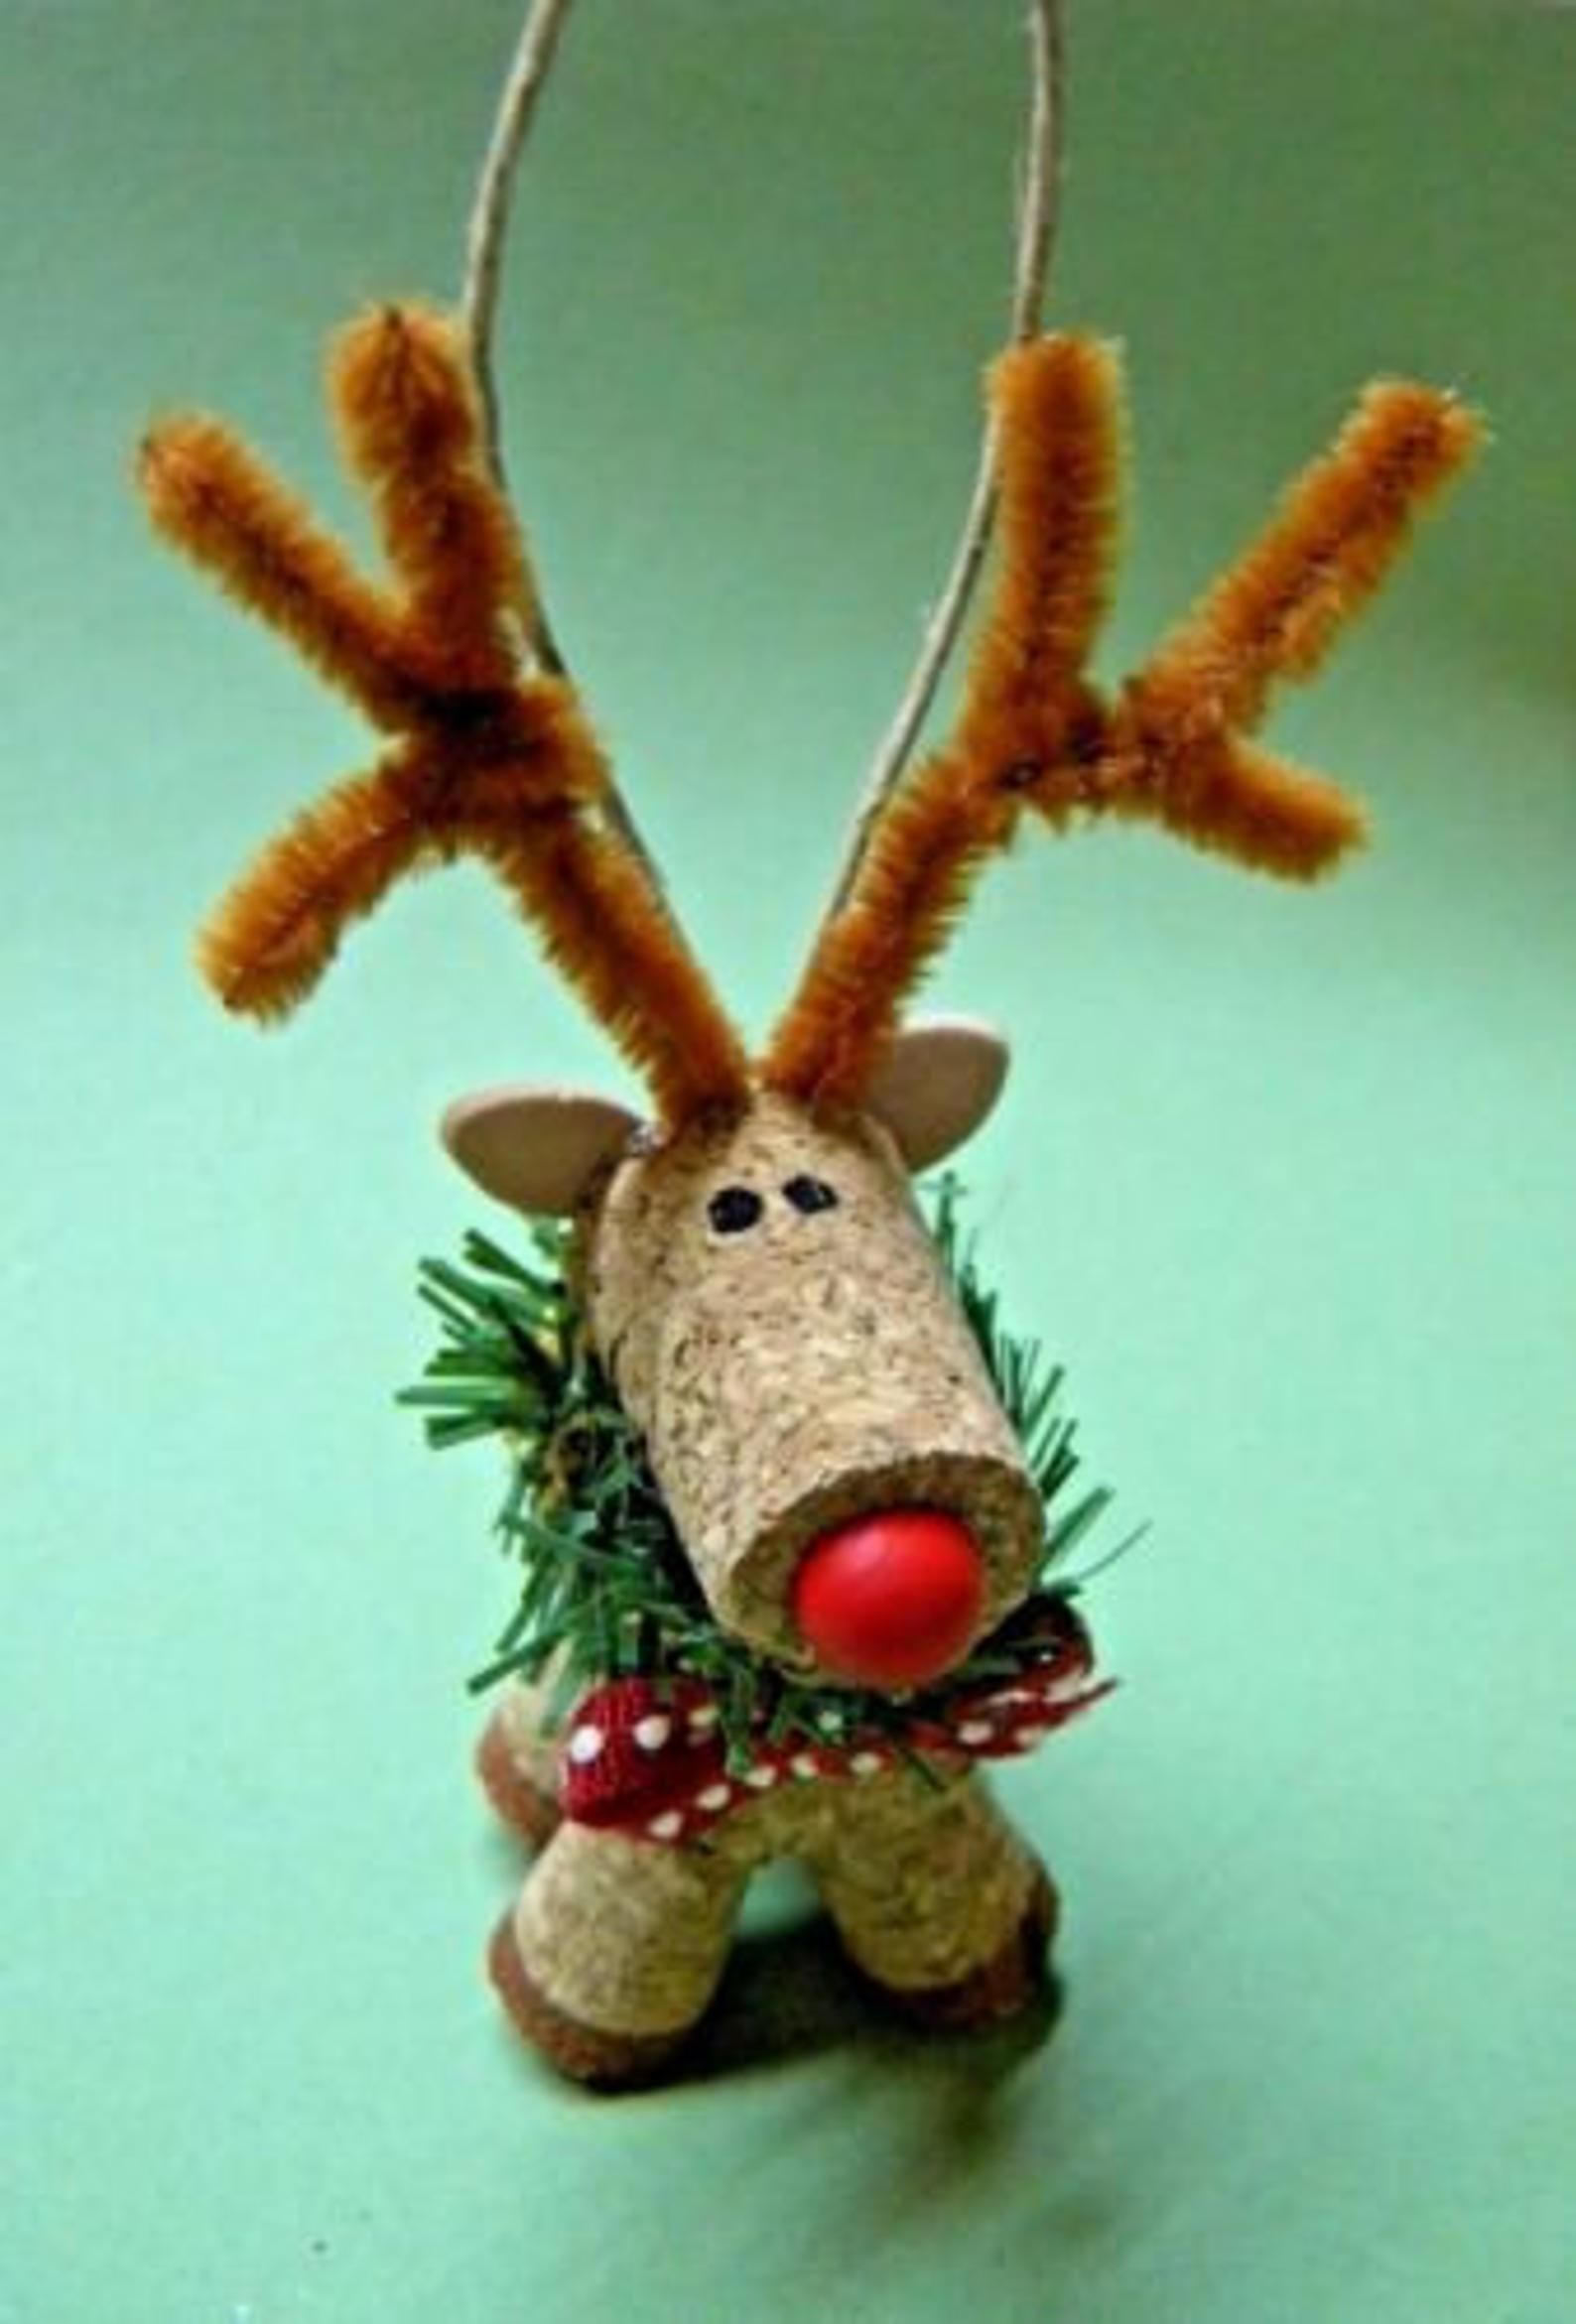 Wine Cork Reindeer Ornament Free Shipping Etsy Cork Crafts Christmas Wine Cork Crafts Christmas Wine Cork Ornaments